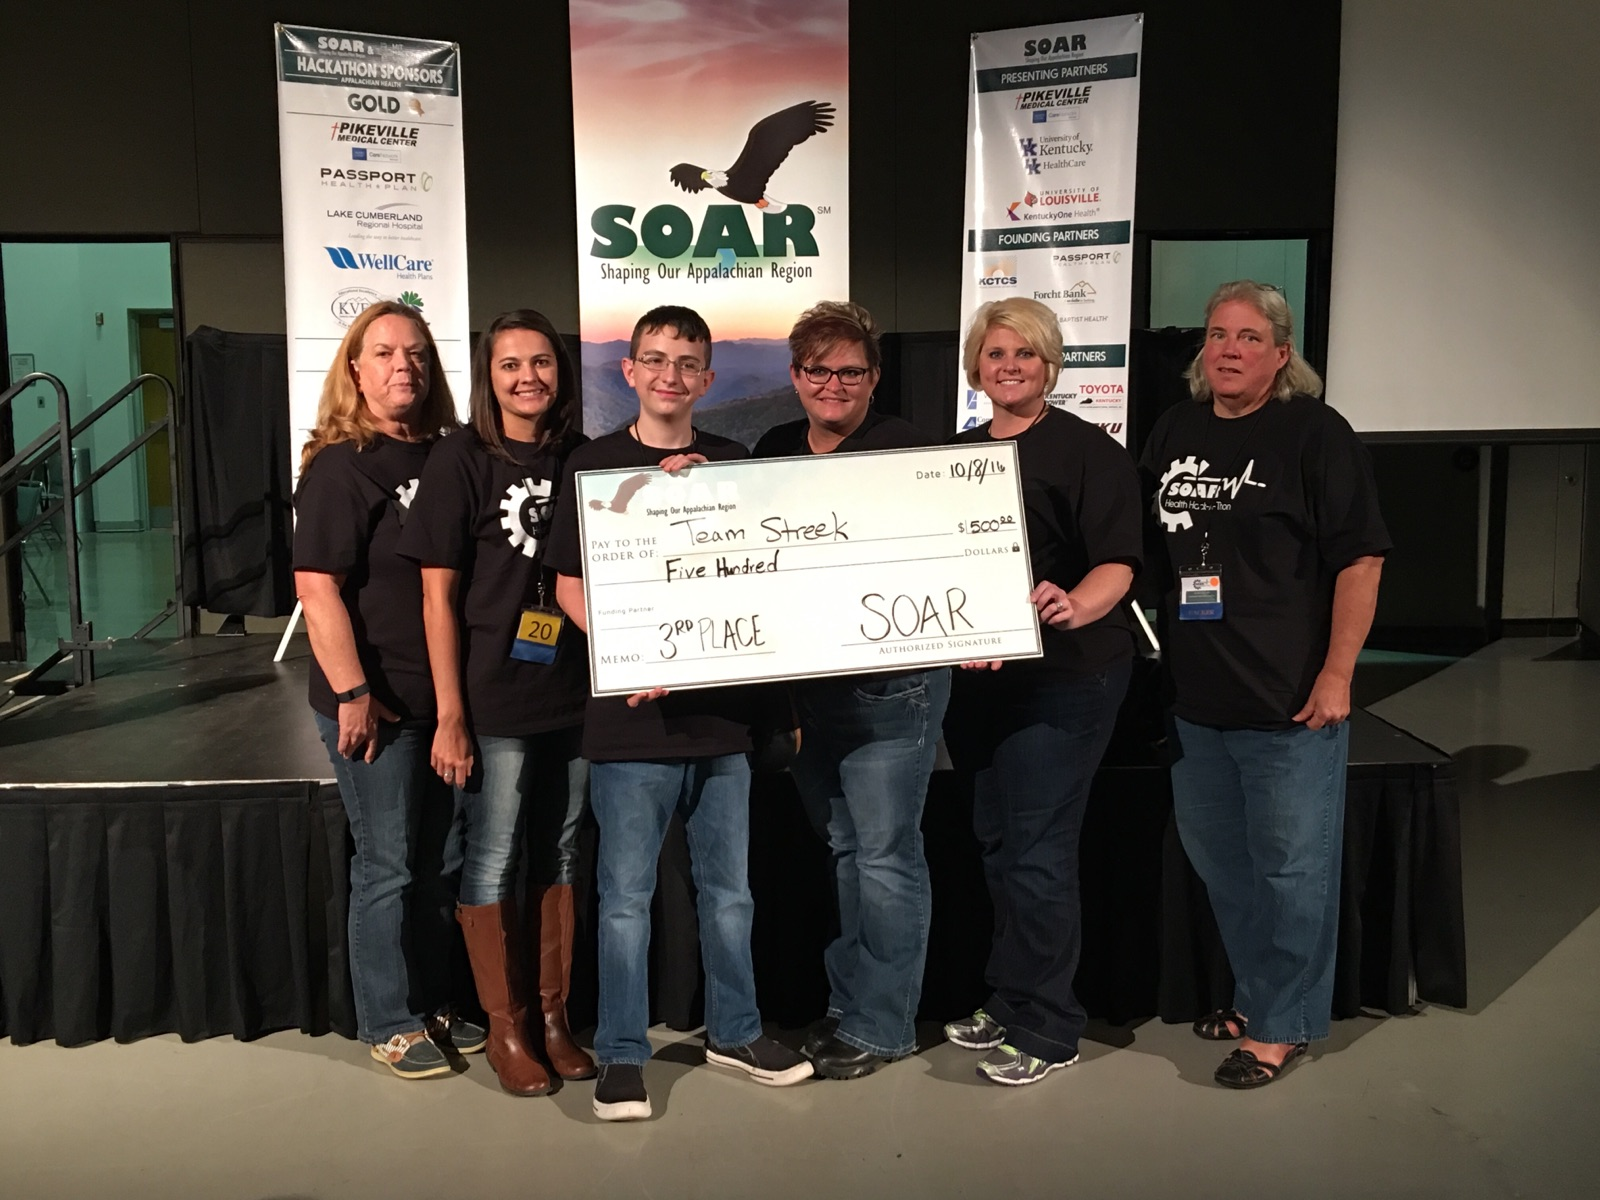 Clinton County High School sophomore James Cecil participated in the SOAR Appalachian Health Hack-a-Thon on October 6-8, 2016.